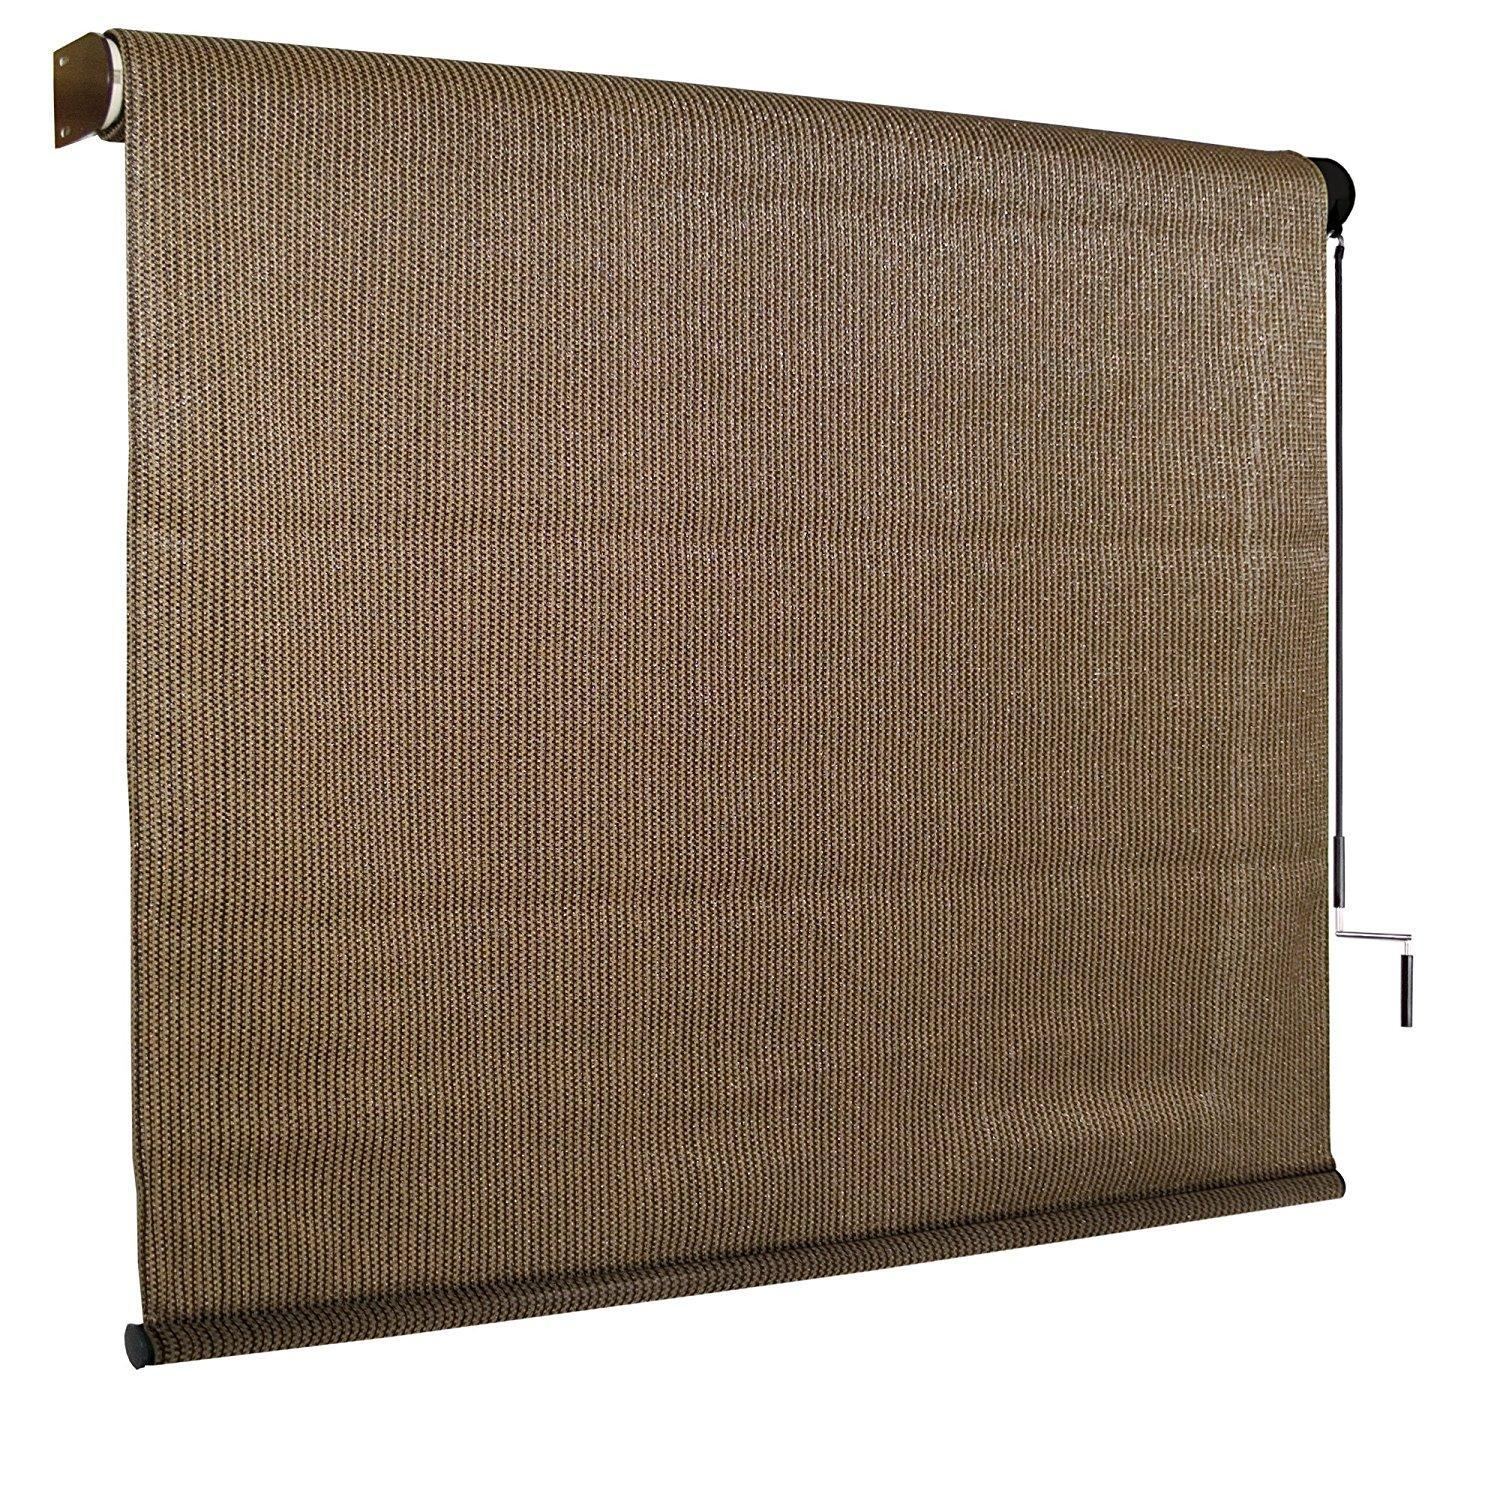 Coolaroo 8ft x 6ft Outdoor Cordless Roller Shade